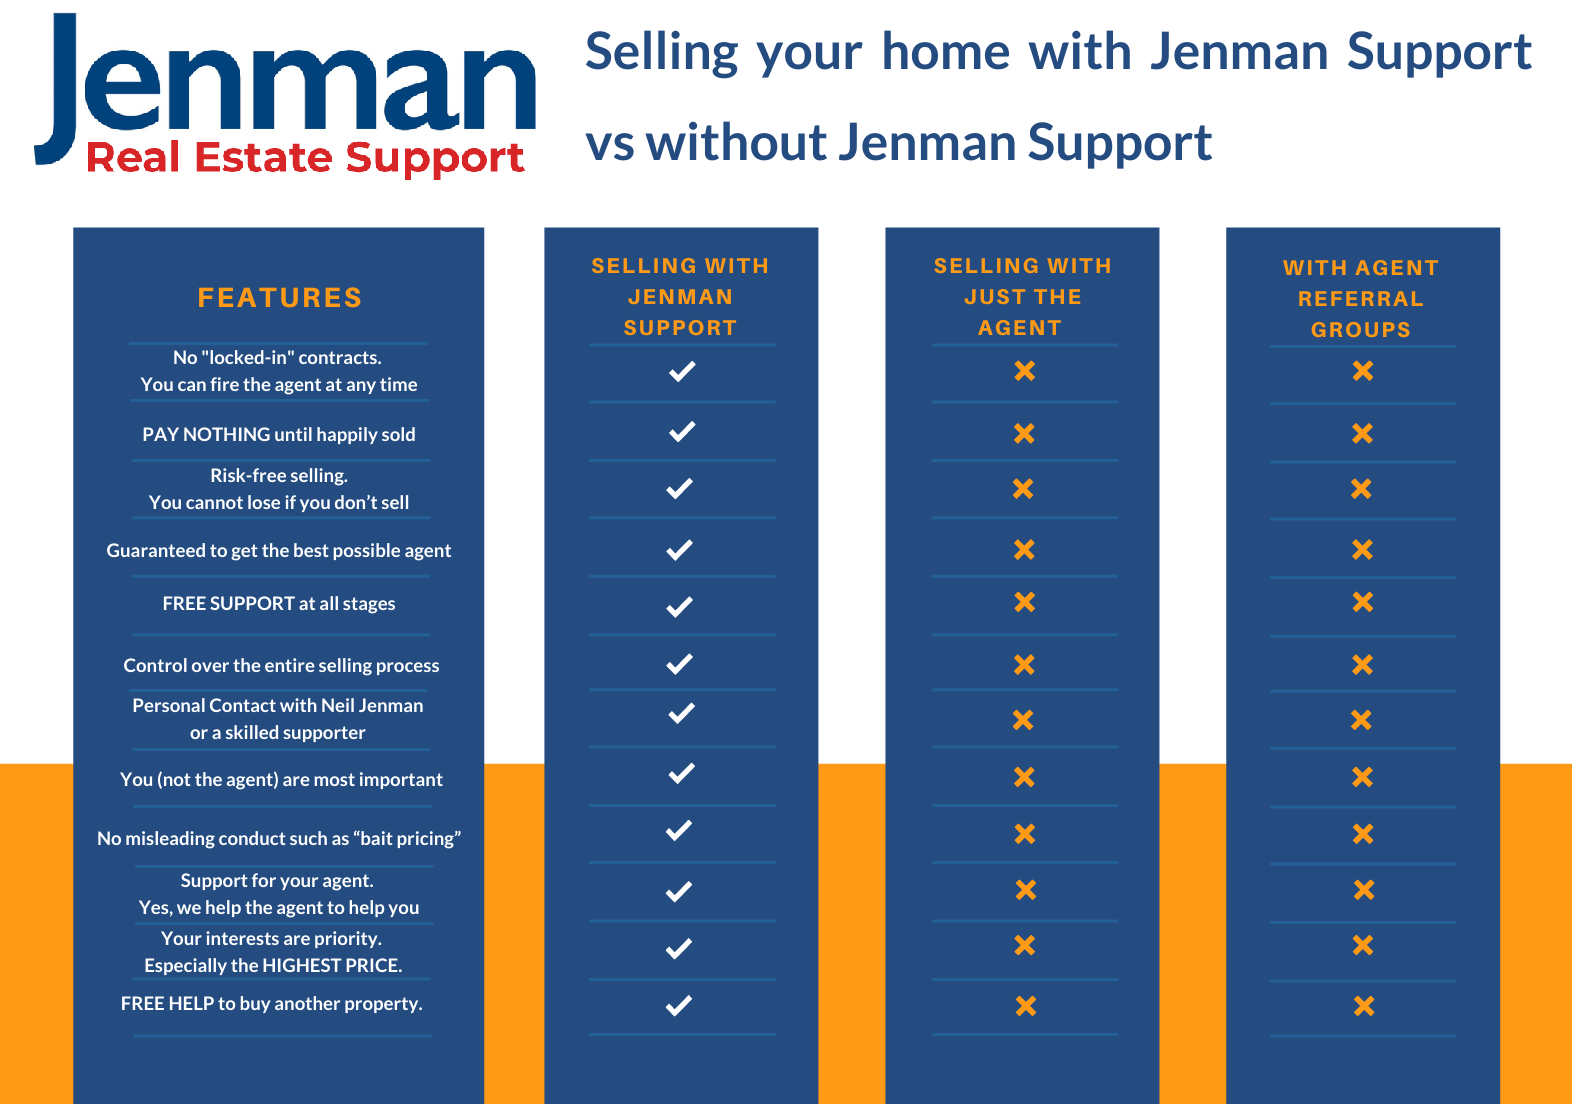 With-vs-Without-Jenman-support-3-1